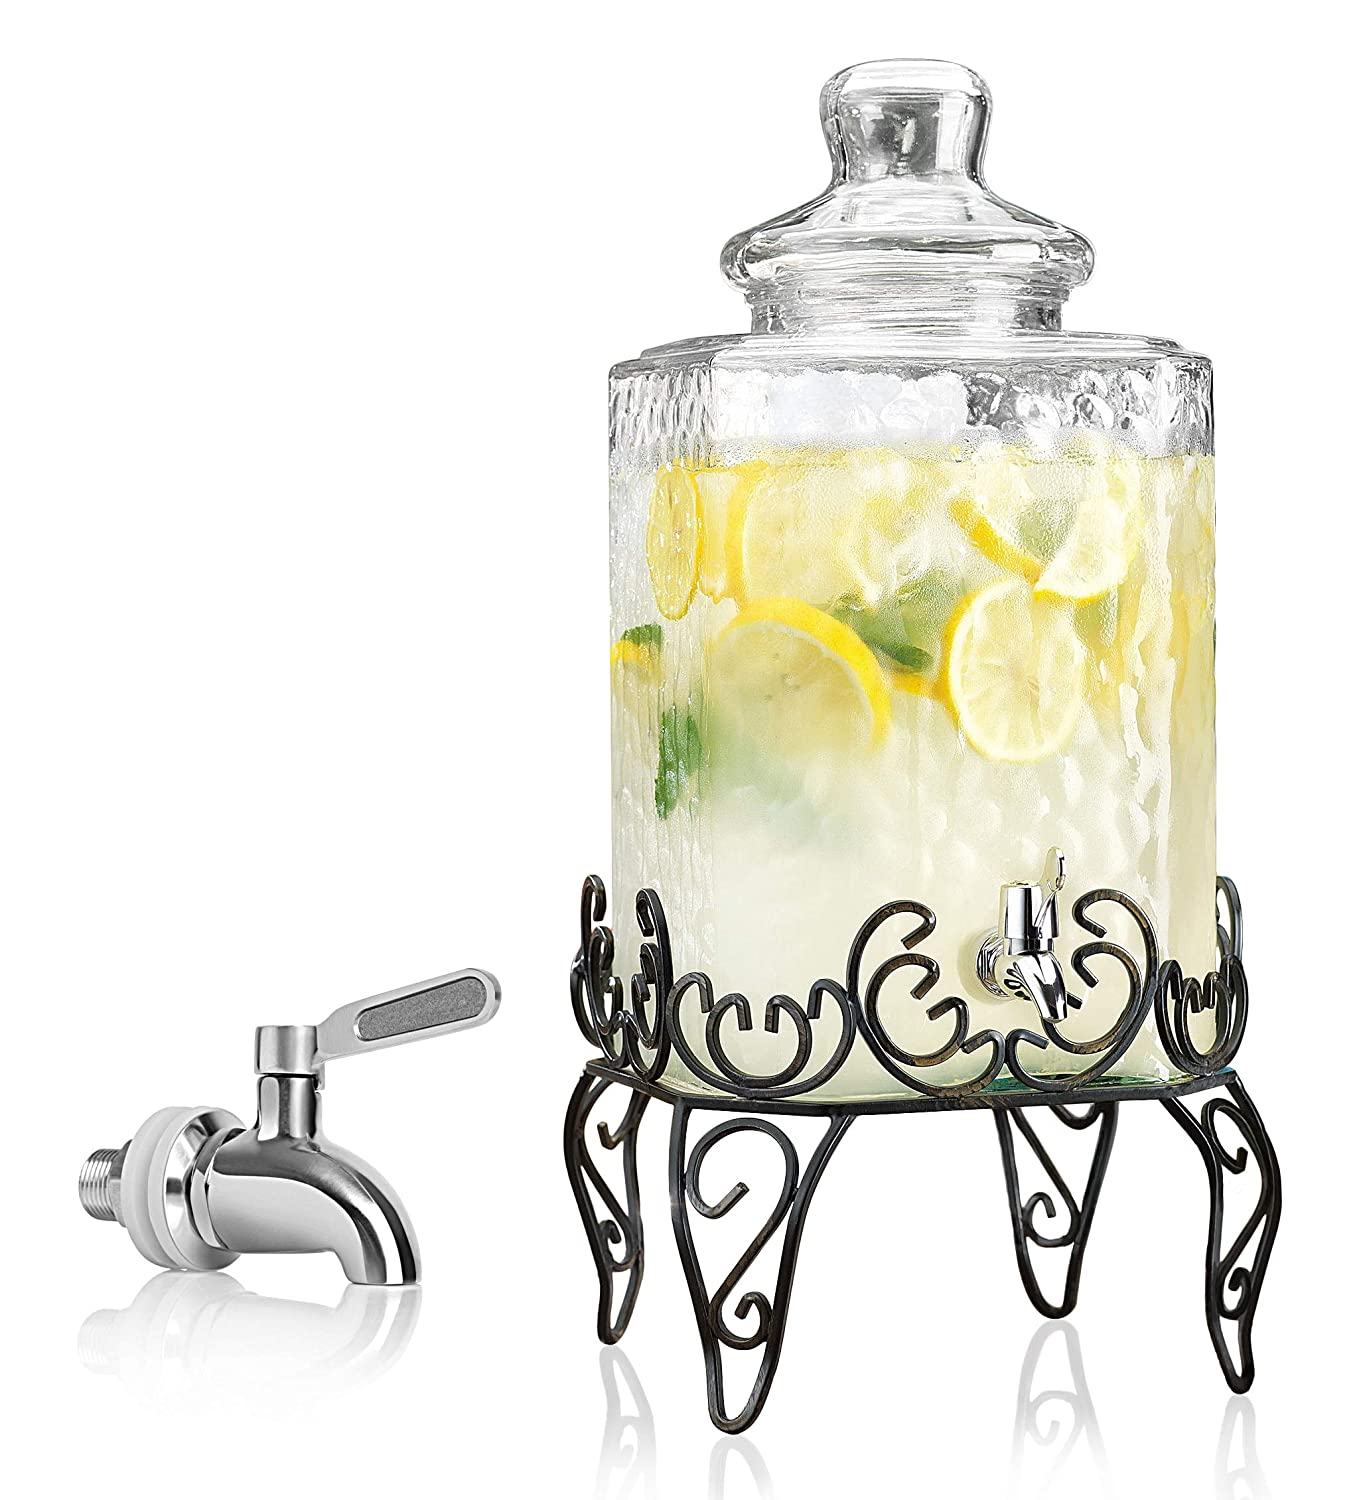 Elegant Hammered Glass Beverage Dispenser with Scroll Iron Stand - 2.25 Gallon - Stainless Steel Leak Free Spigot Included - Home Bar & Party Vintage Drink Dispenser (Black)